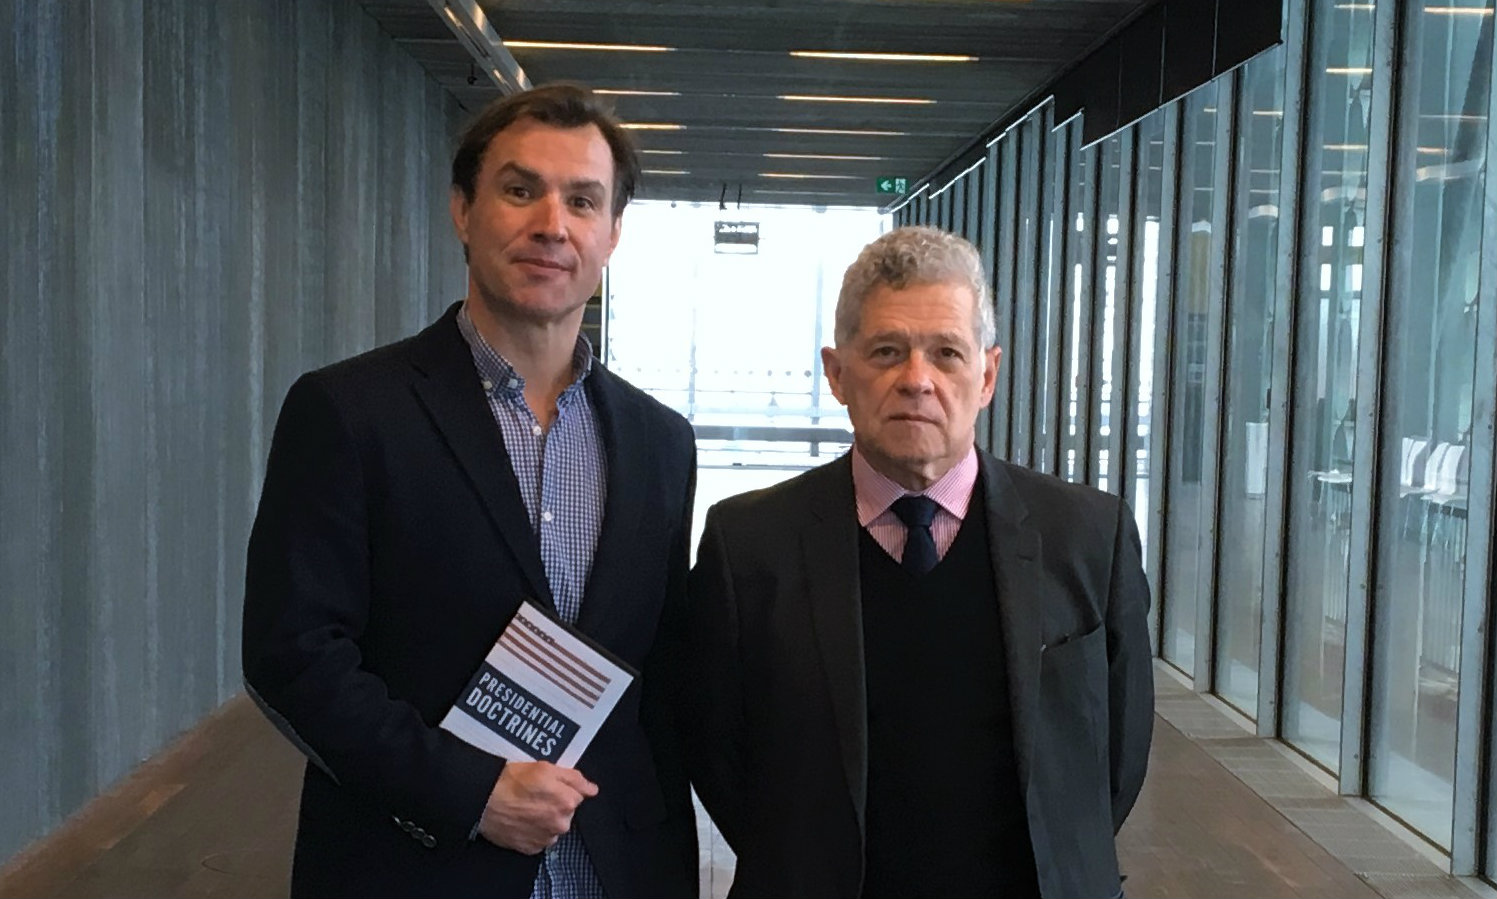 Dr Aiden Warren and Professor Joseph Siracusa with their newly released publication Presidential Doctrines: U.S. National Security from George Washington to Barack Obama